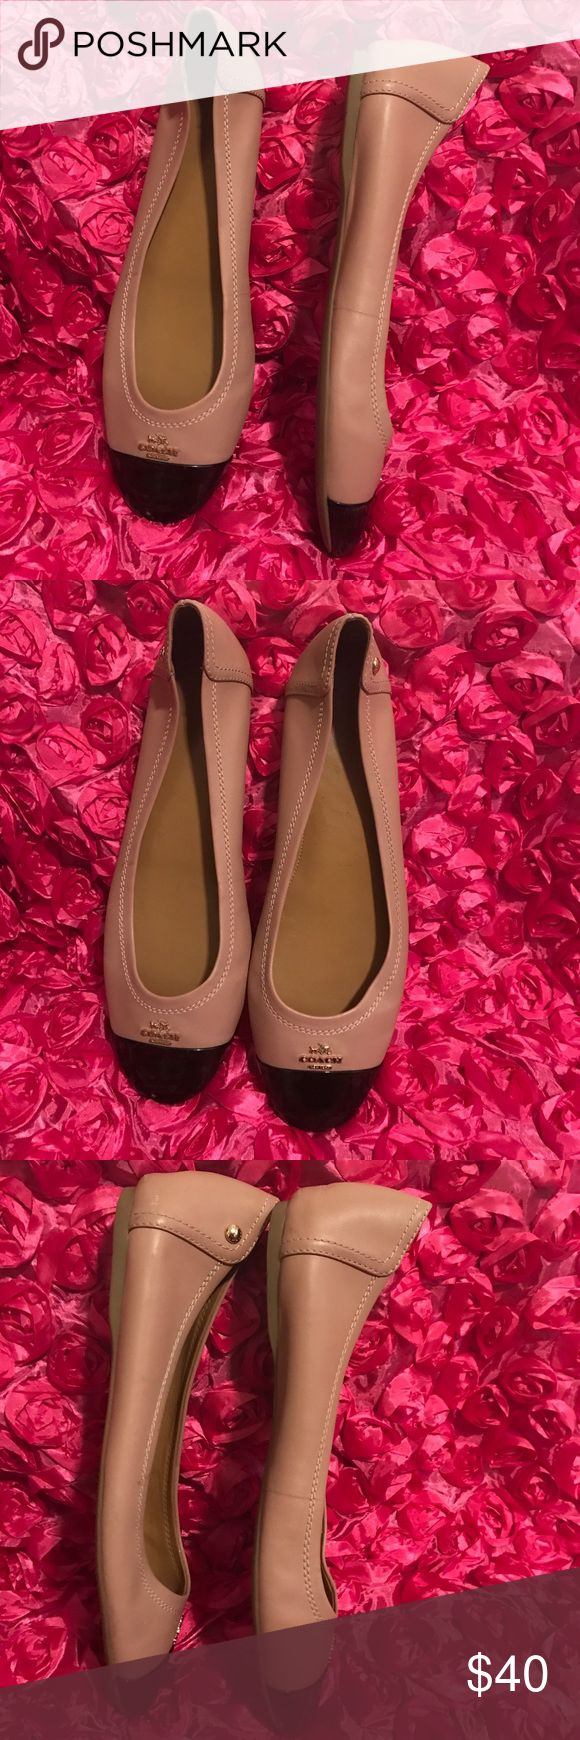 Women's coach flats Good condition please look the pictures little scuff Coach Shoes Flats & Loafers